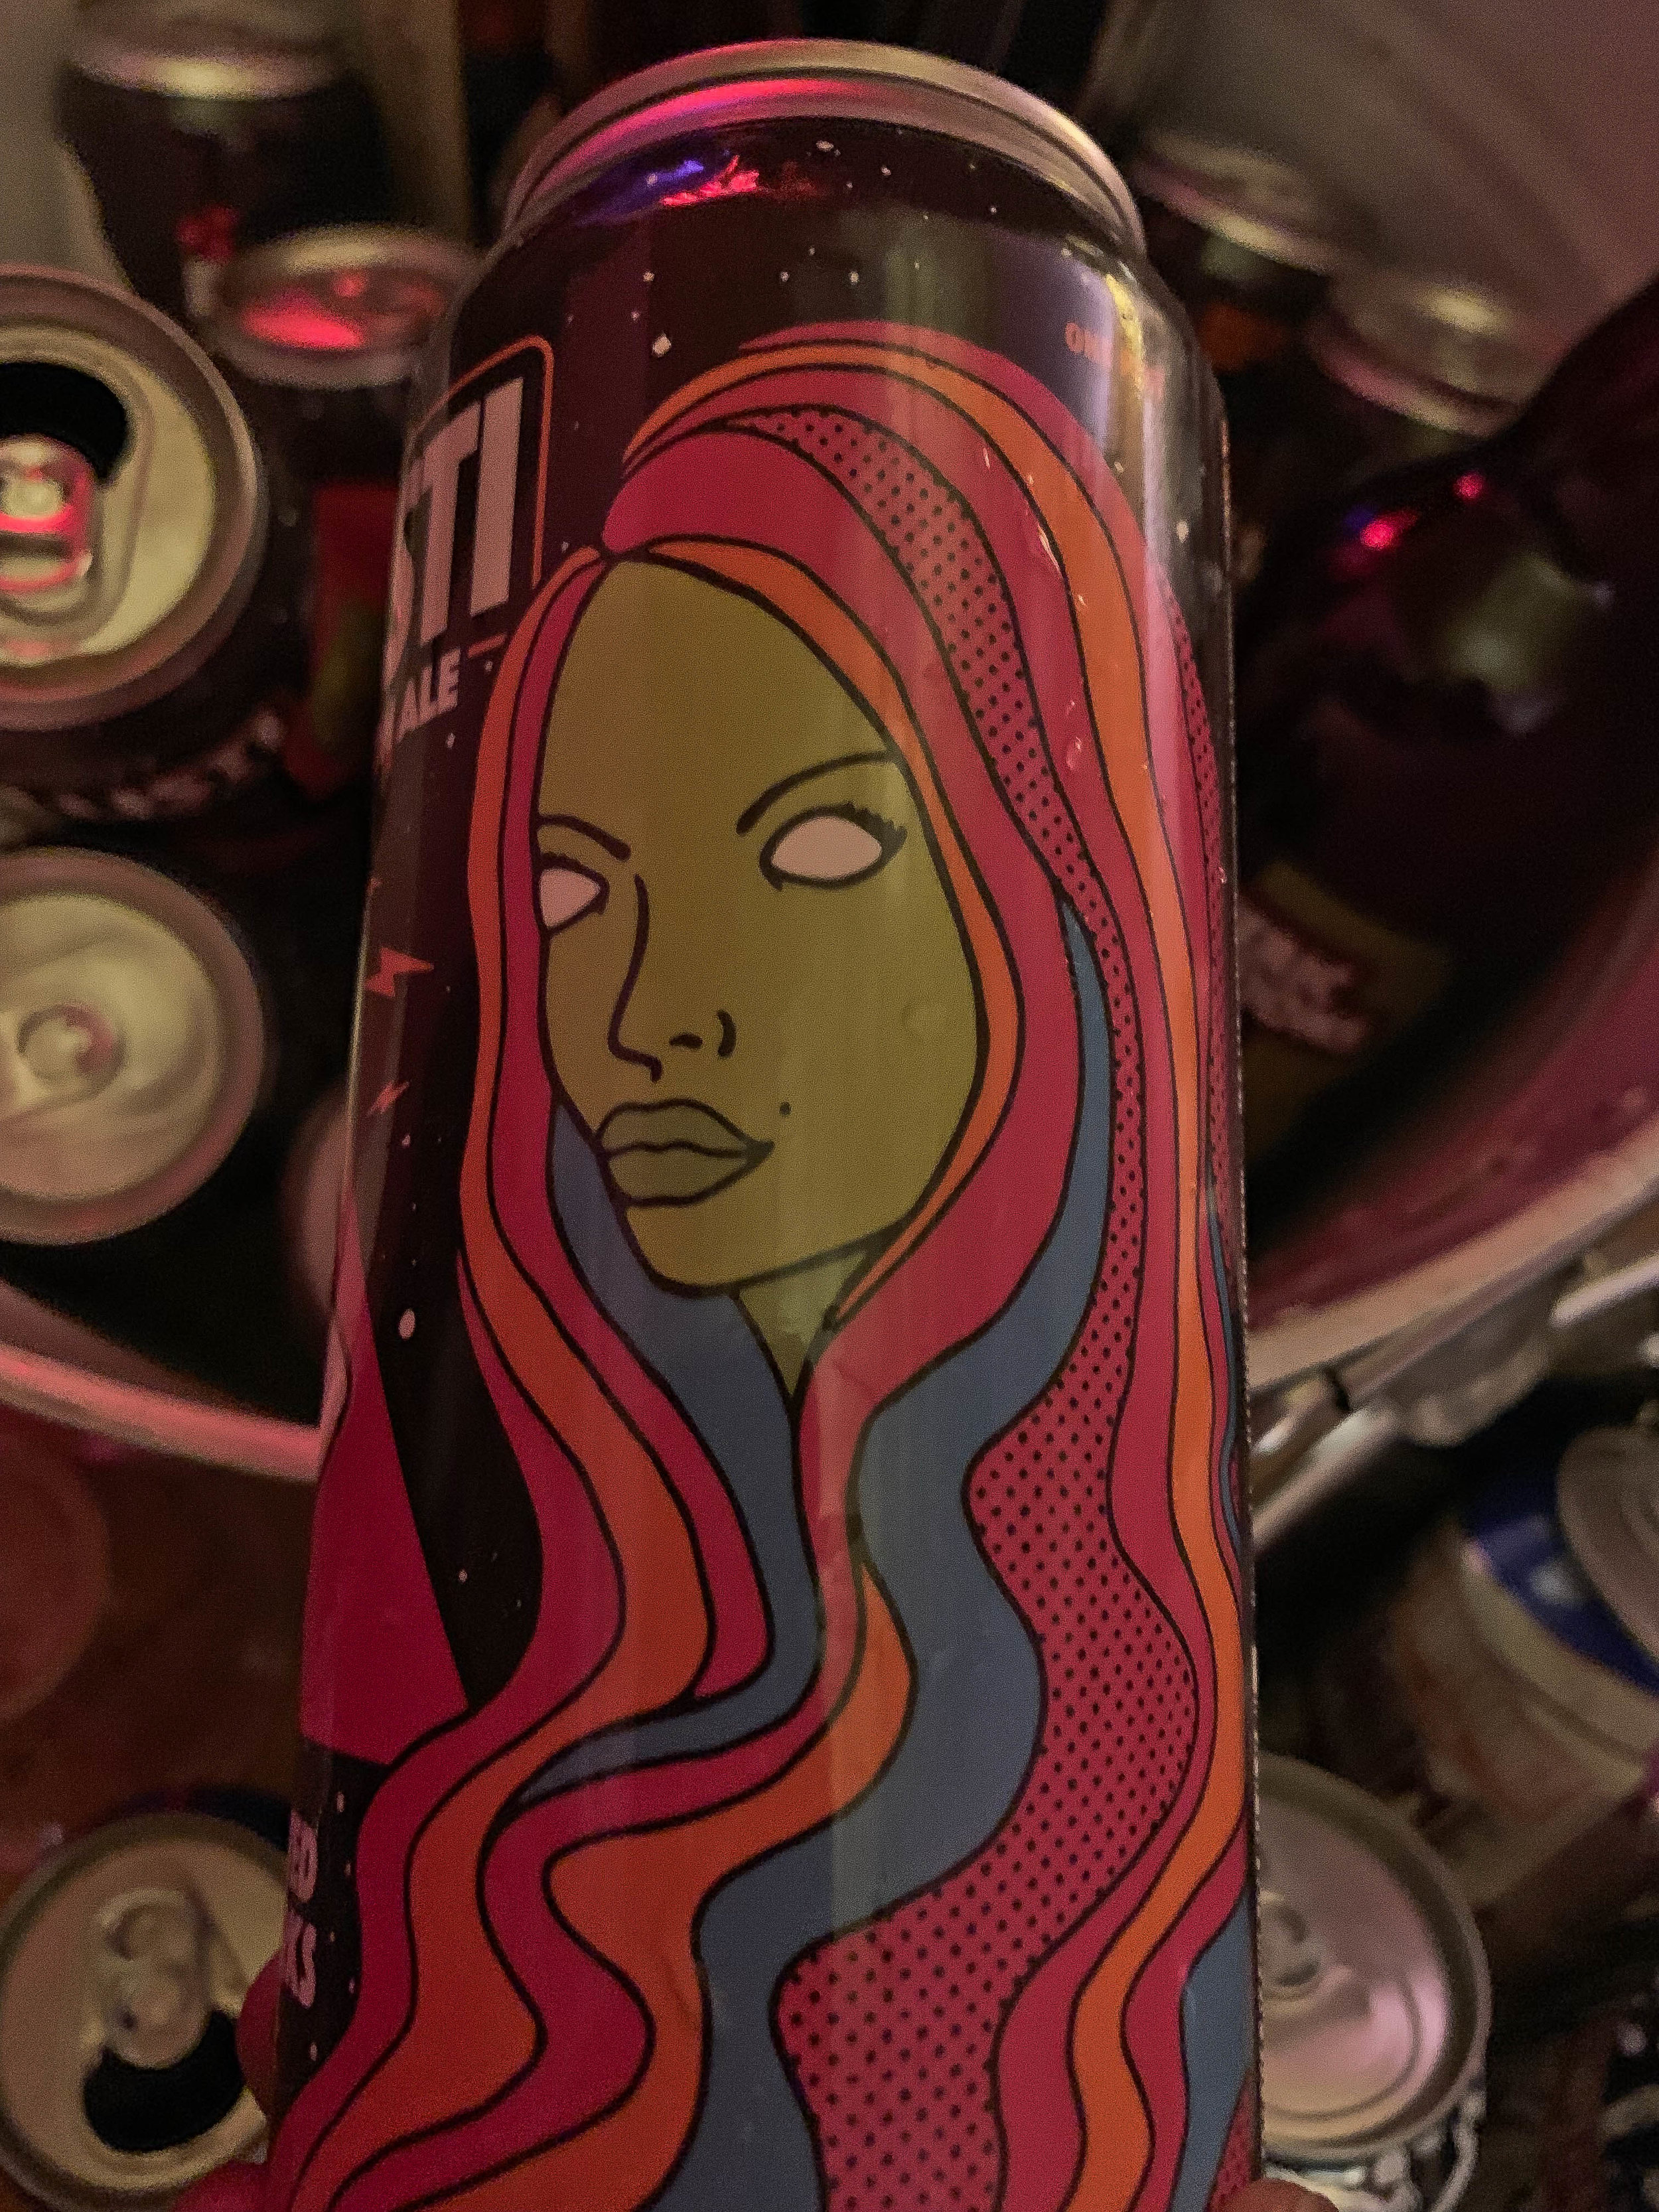 This can is trippy right?